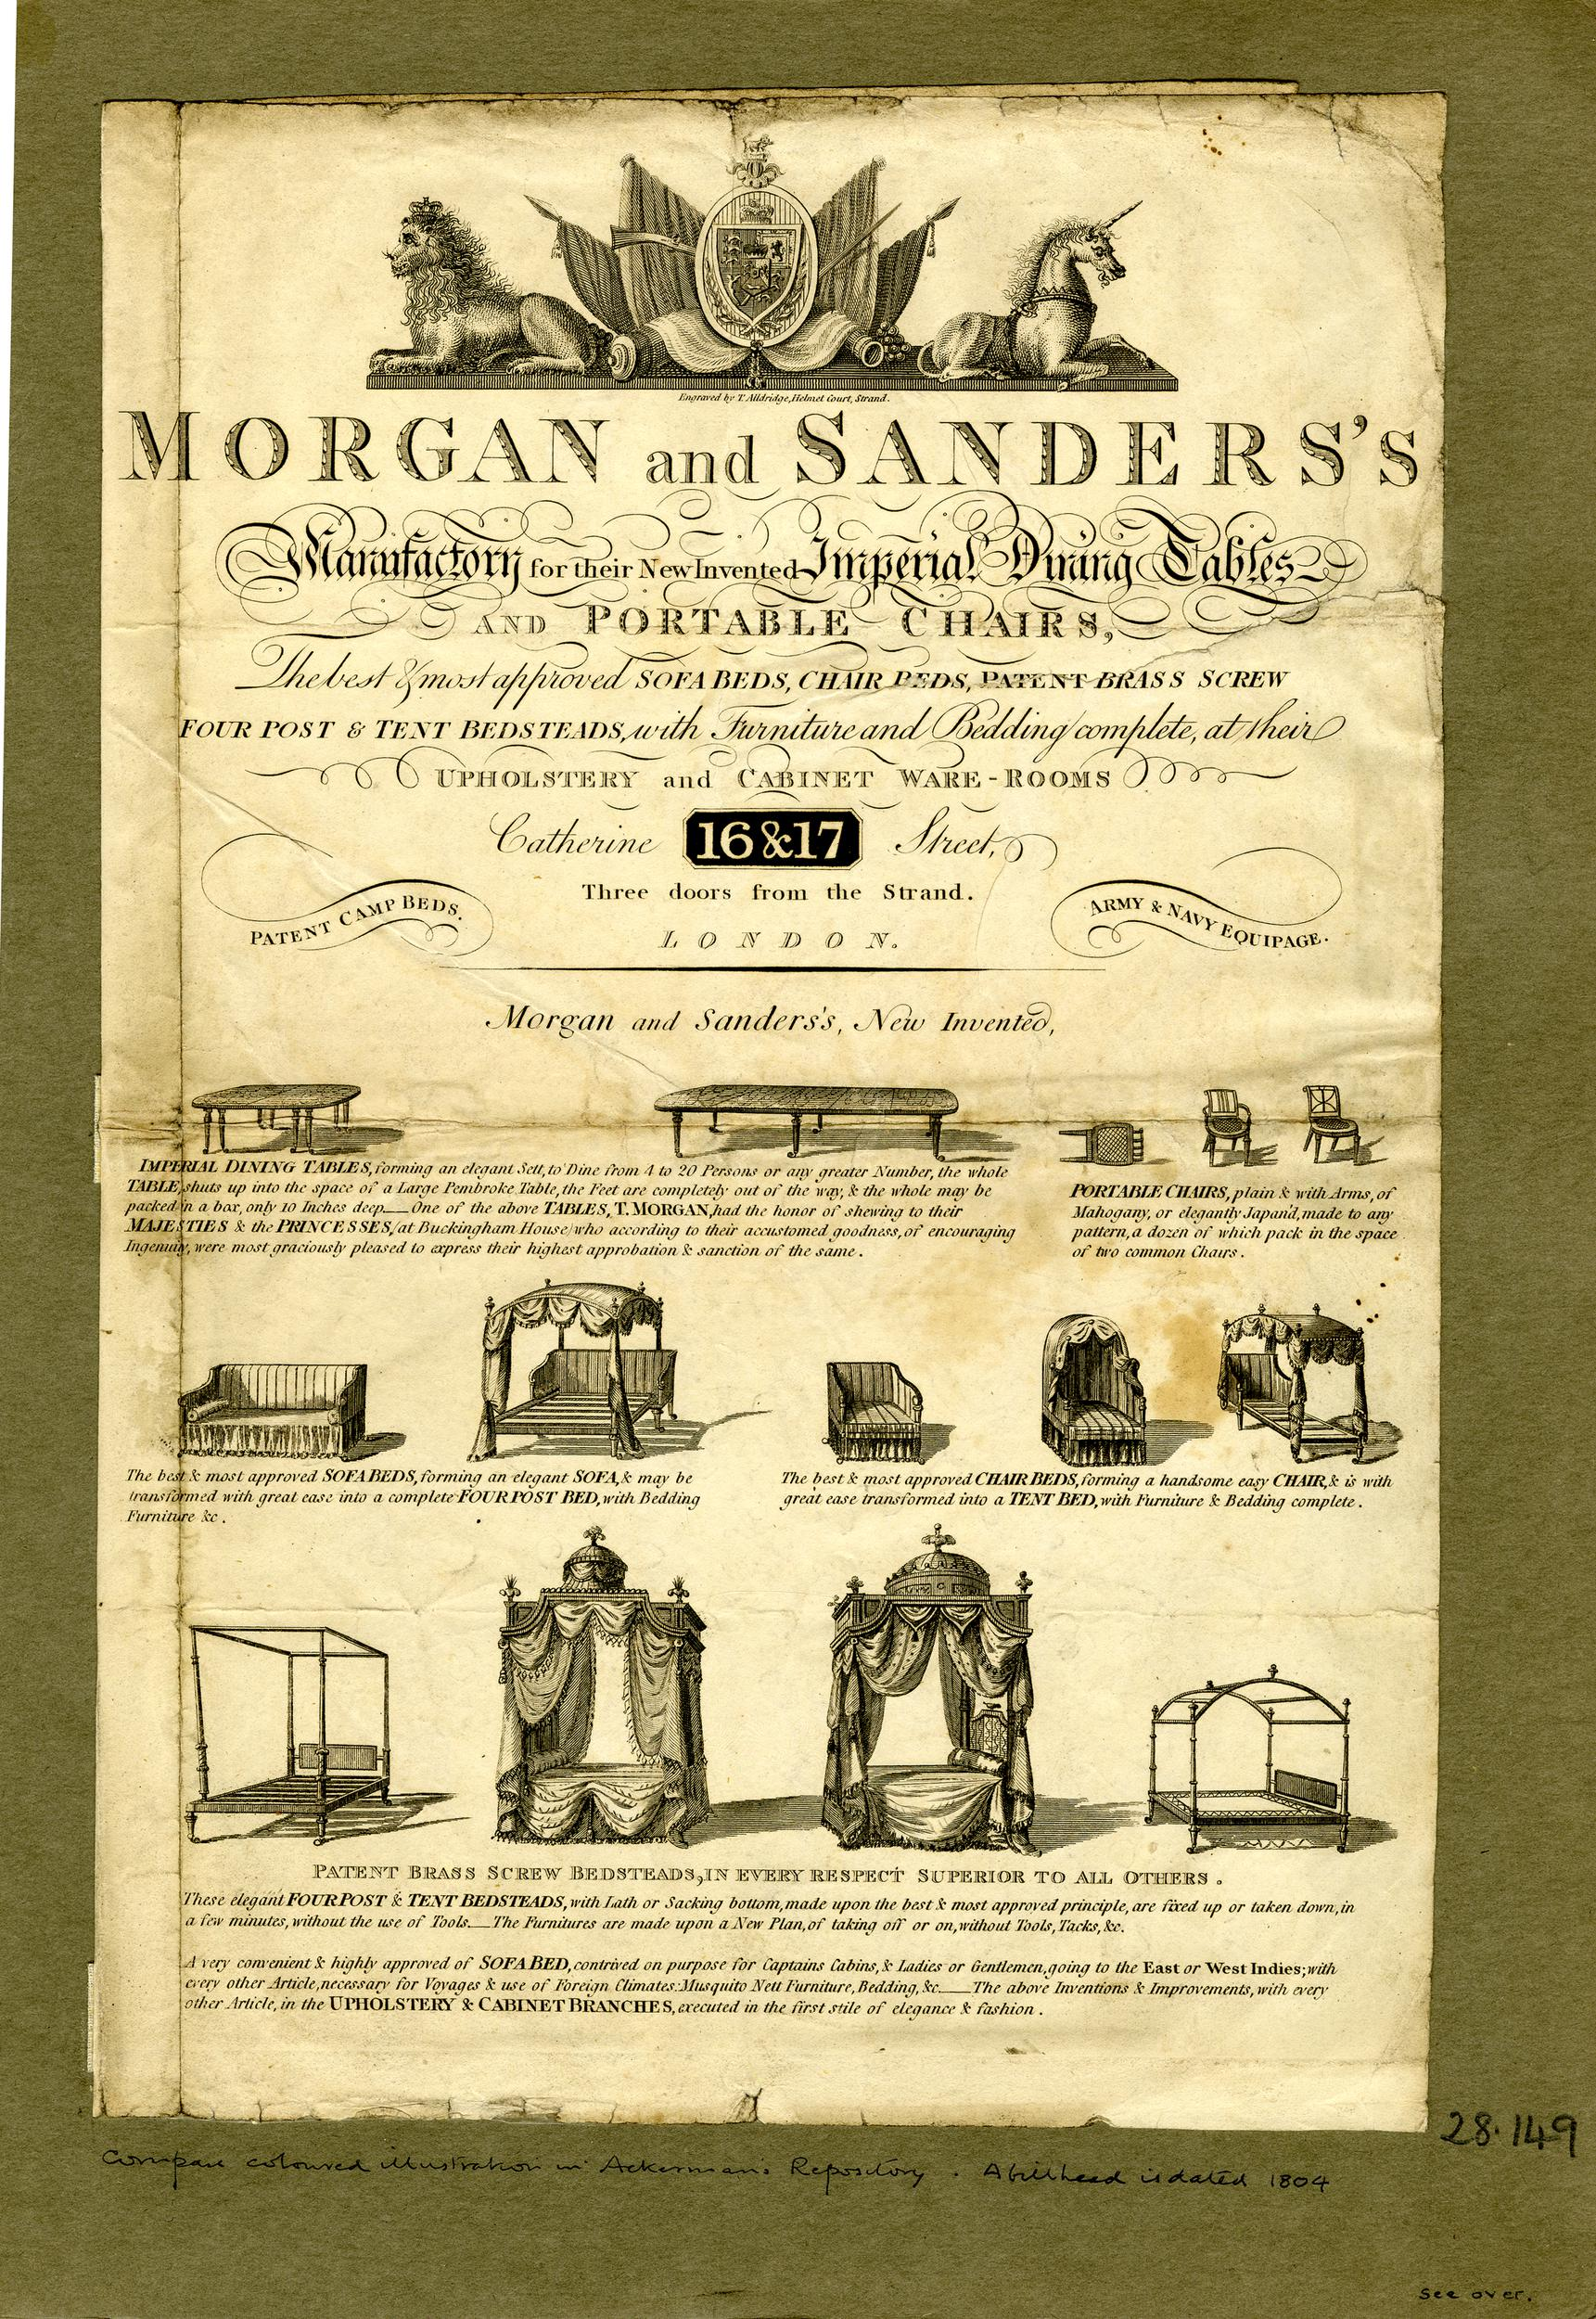 Sander's newly invented products: two tables, a foldable chair, sofa-bed, chair-bed, four-post beds. Sheet folded, with letterpress text on the other side. 1804